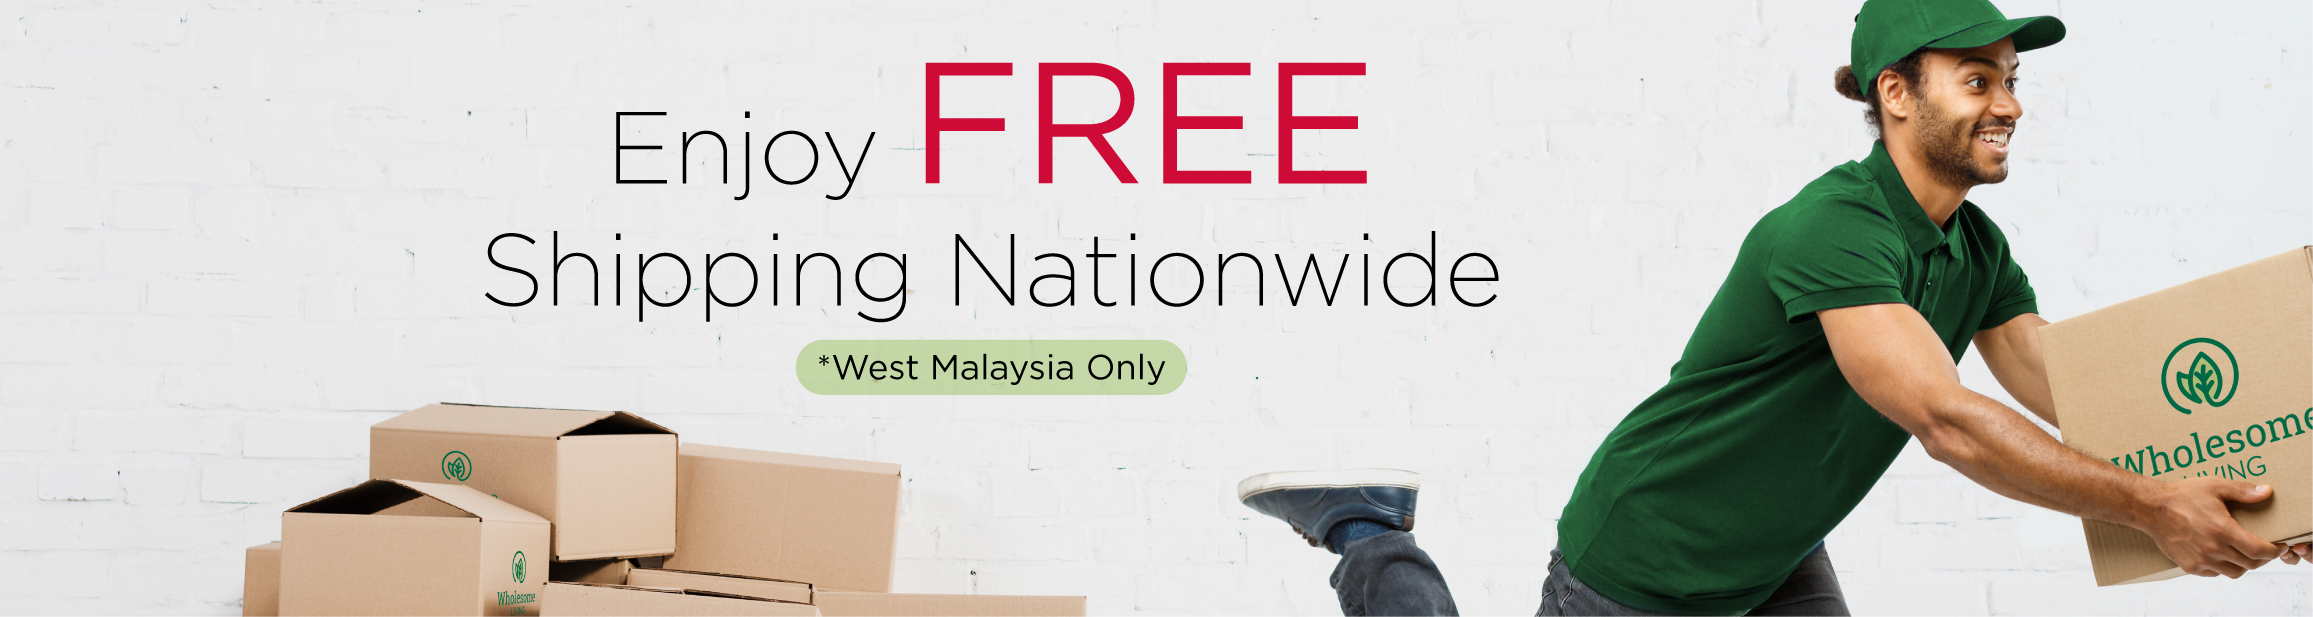 FREE Shipping Nationwide